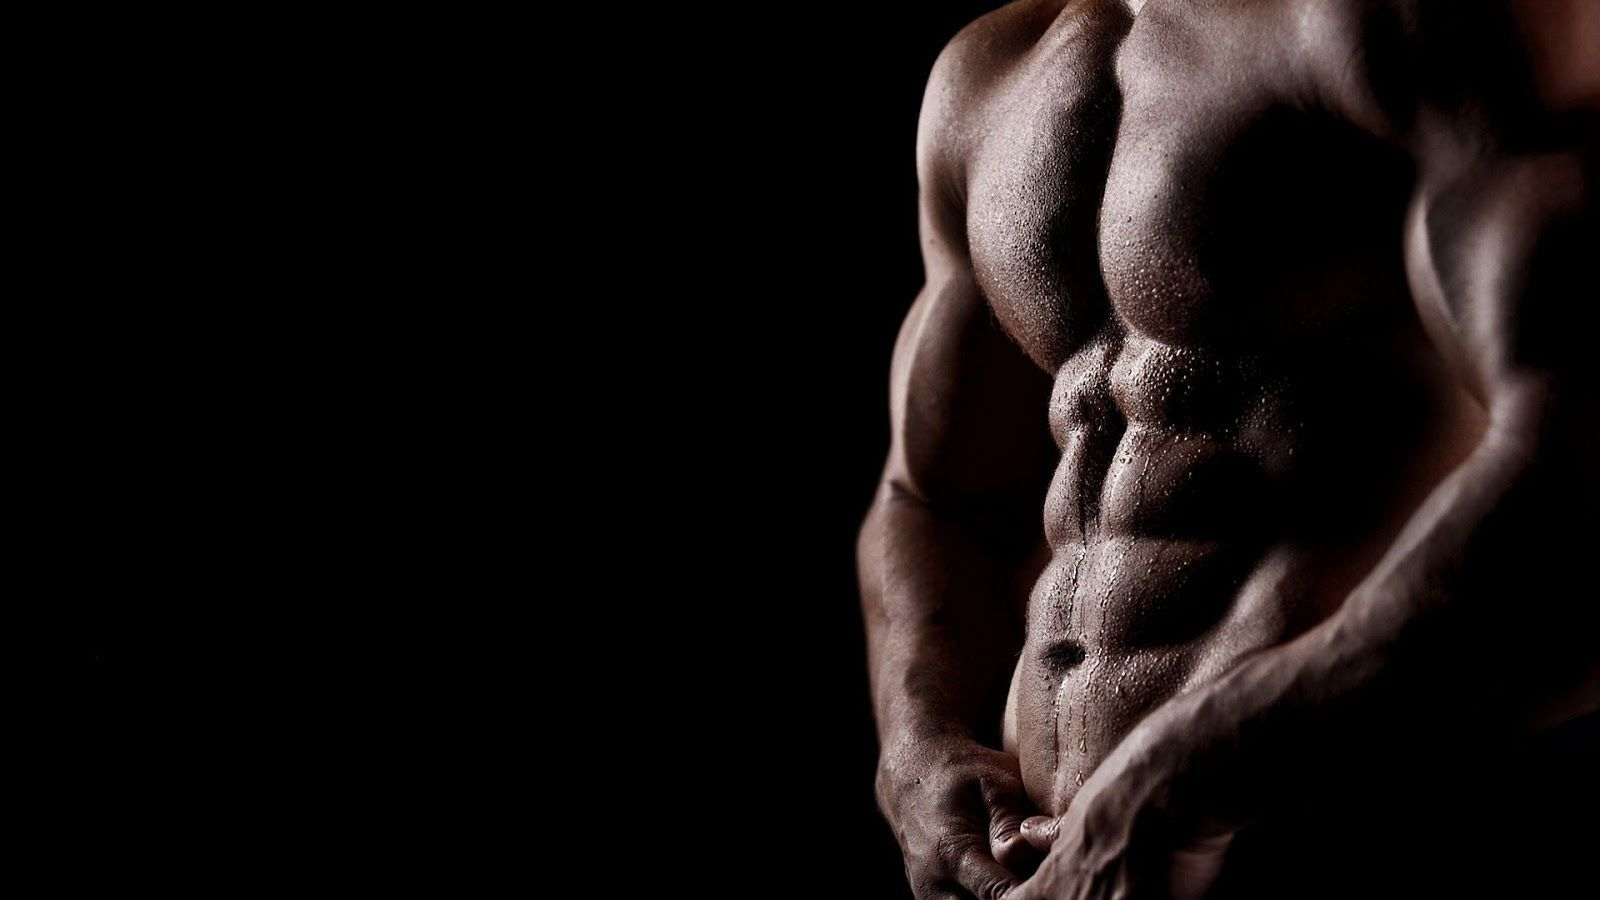 Six Pack Abs Wallpapers Wallpaper Cave